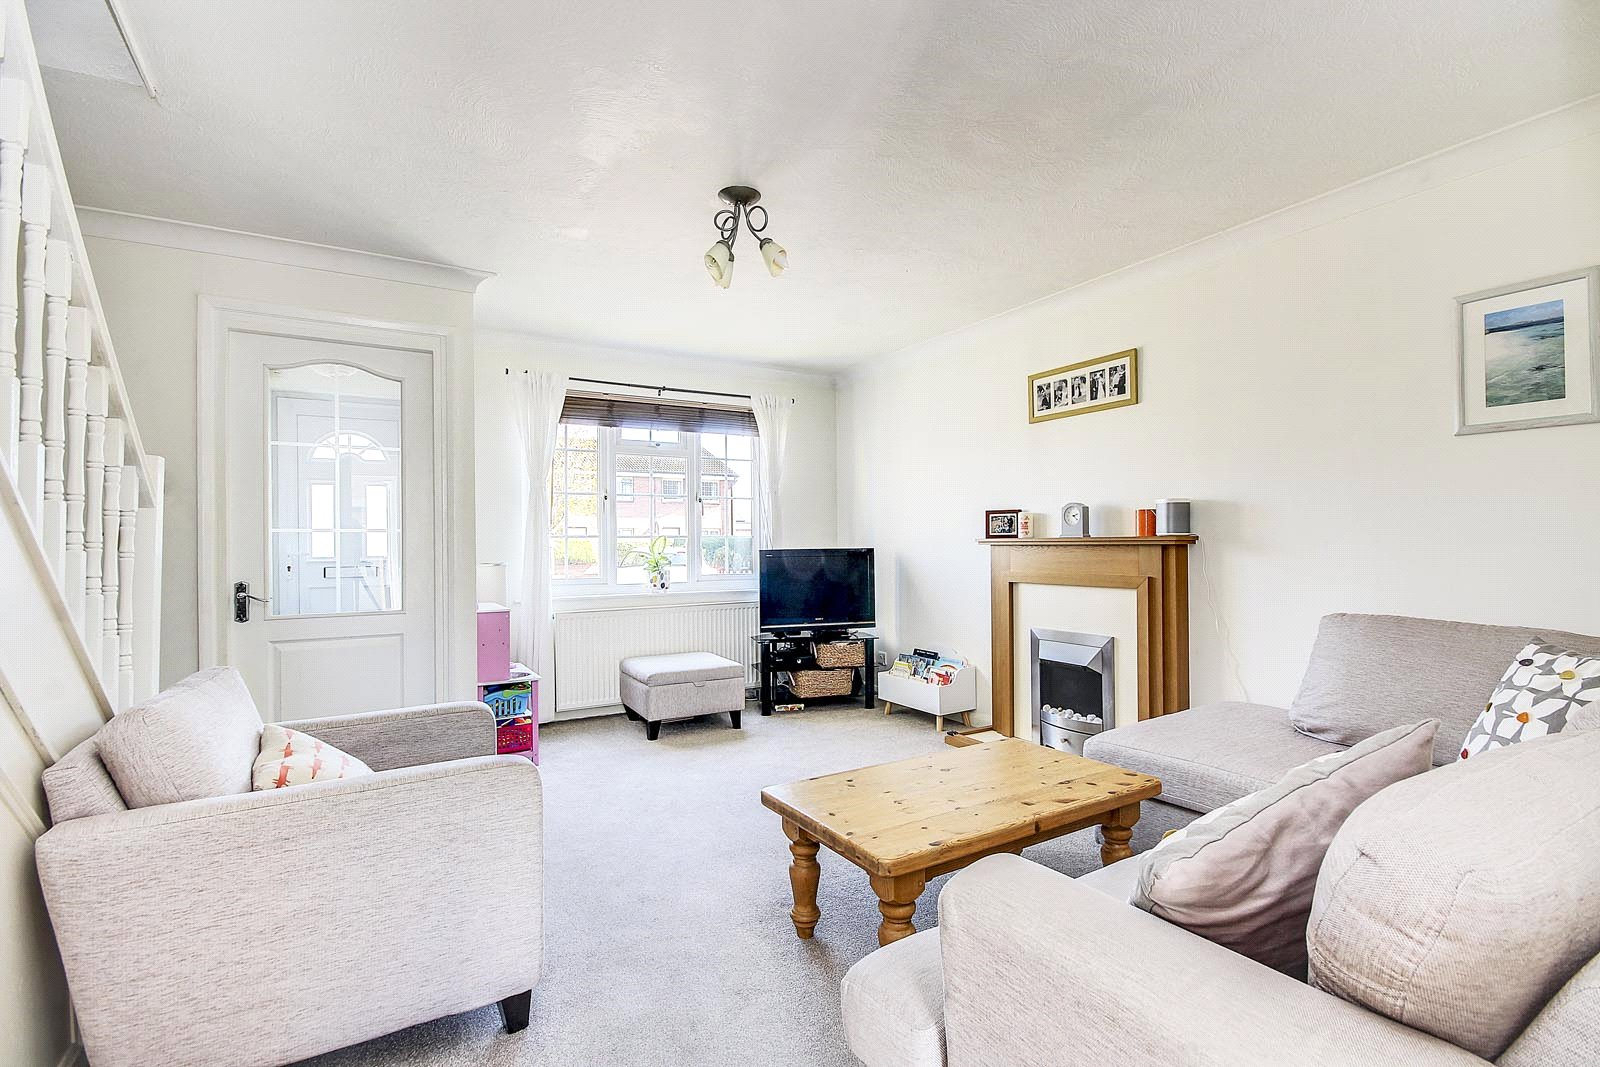 3 bed house for sale in Carvel Way, Littlehampton 3